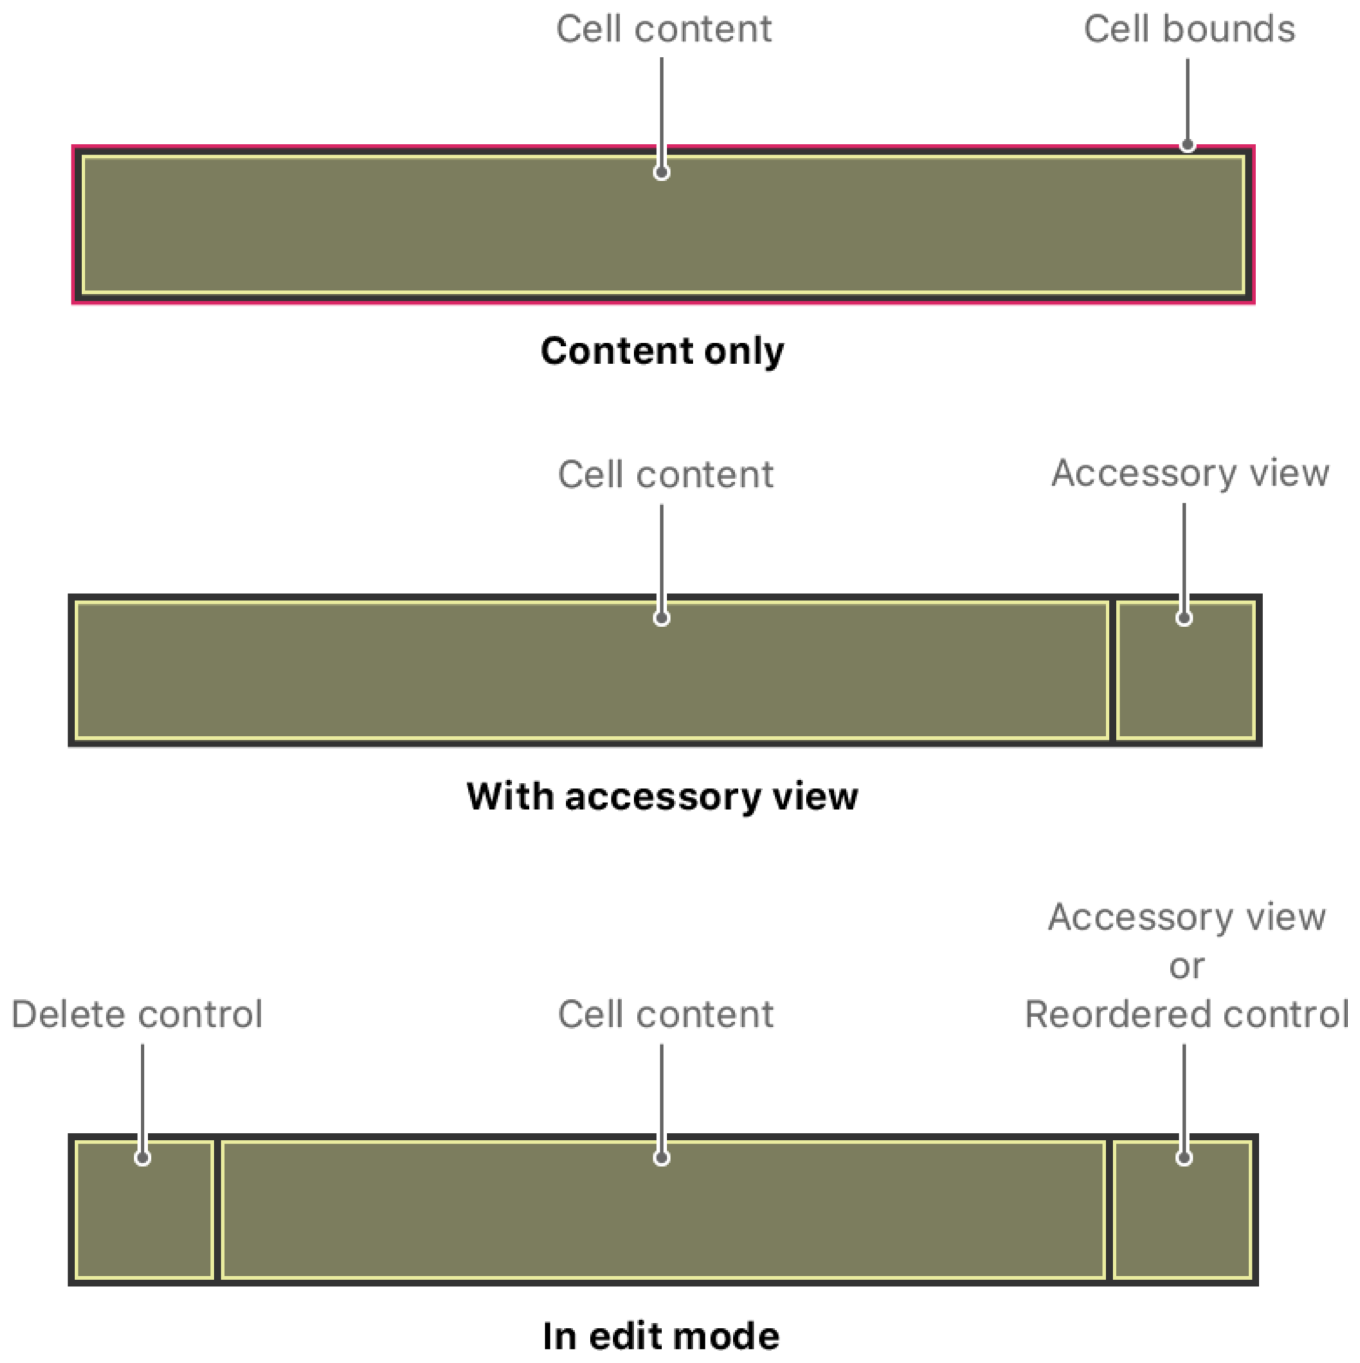 Illustration showing the area of a cell by itself and with an accessory view and edit control. The content area of a cell shrinks as needed to accommodate the accessory view or edit controls.